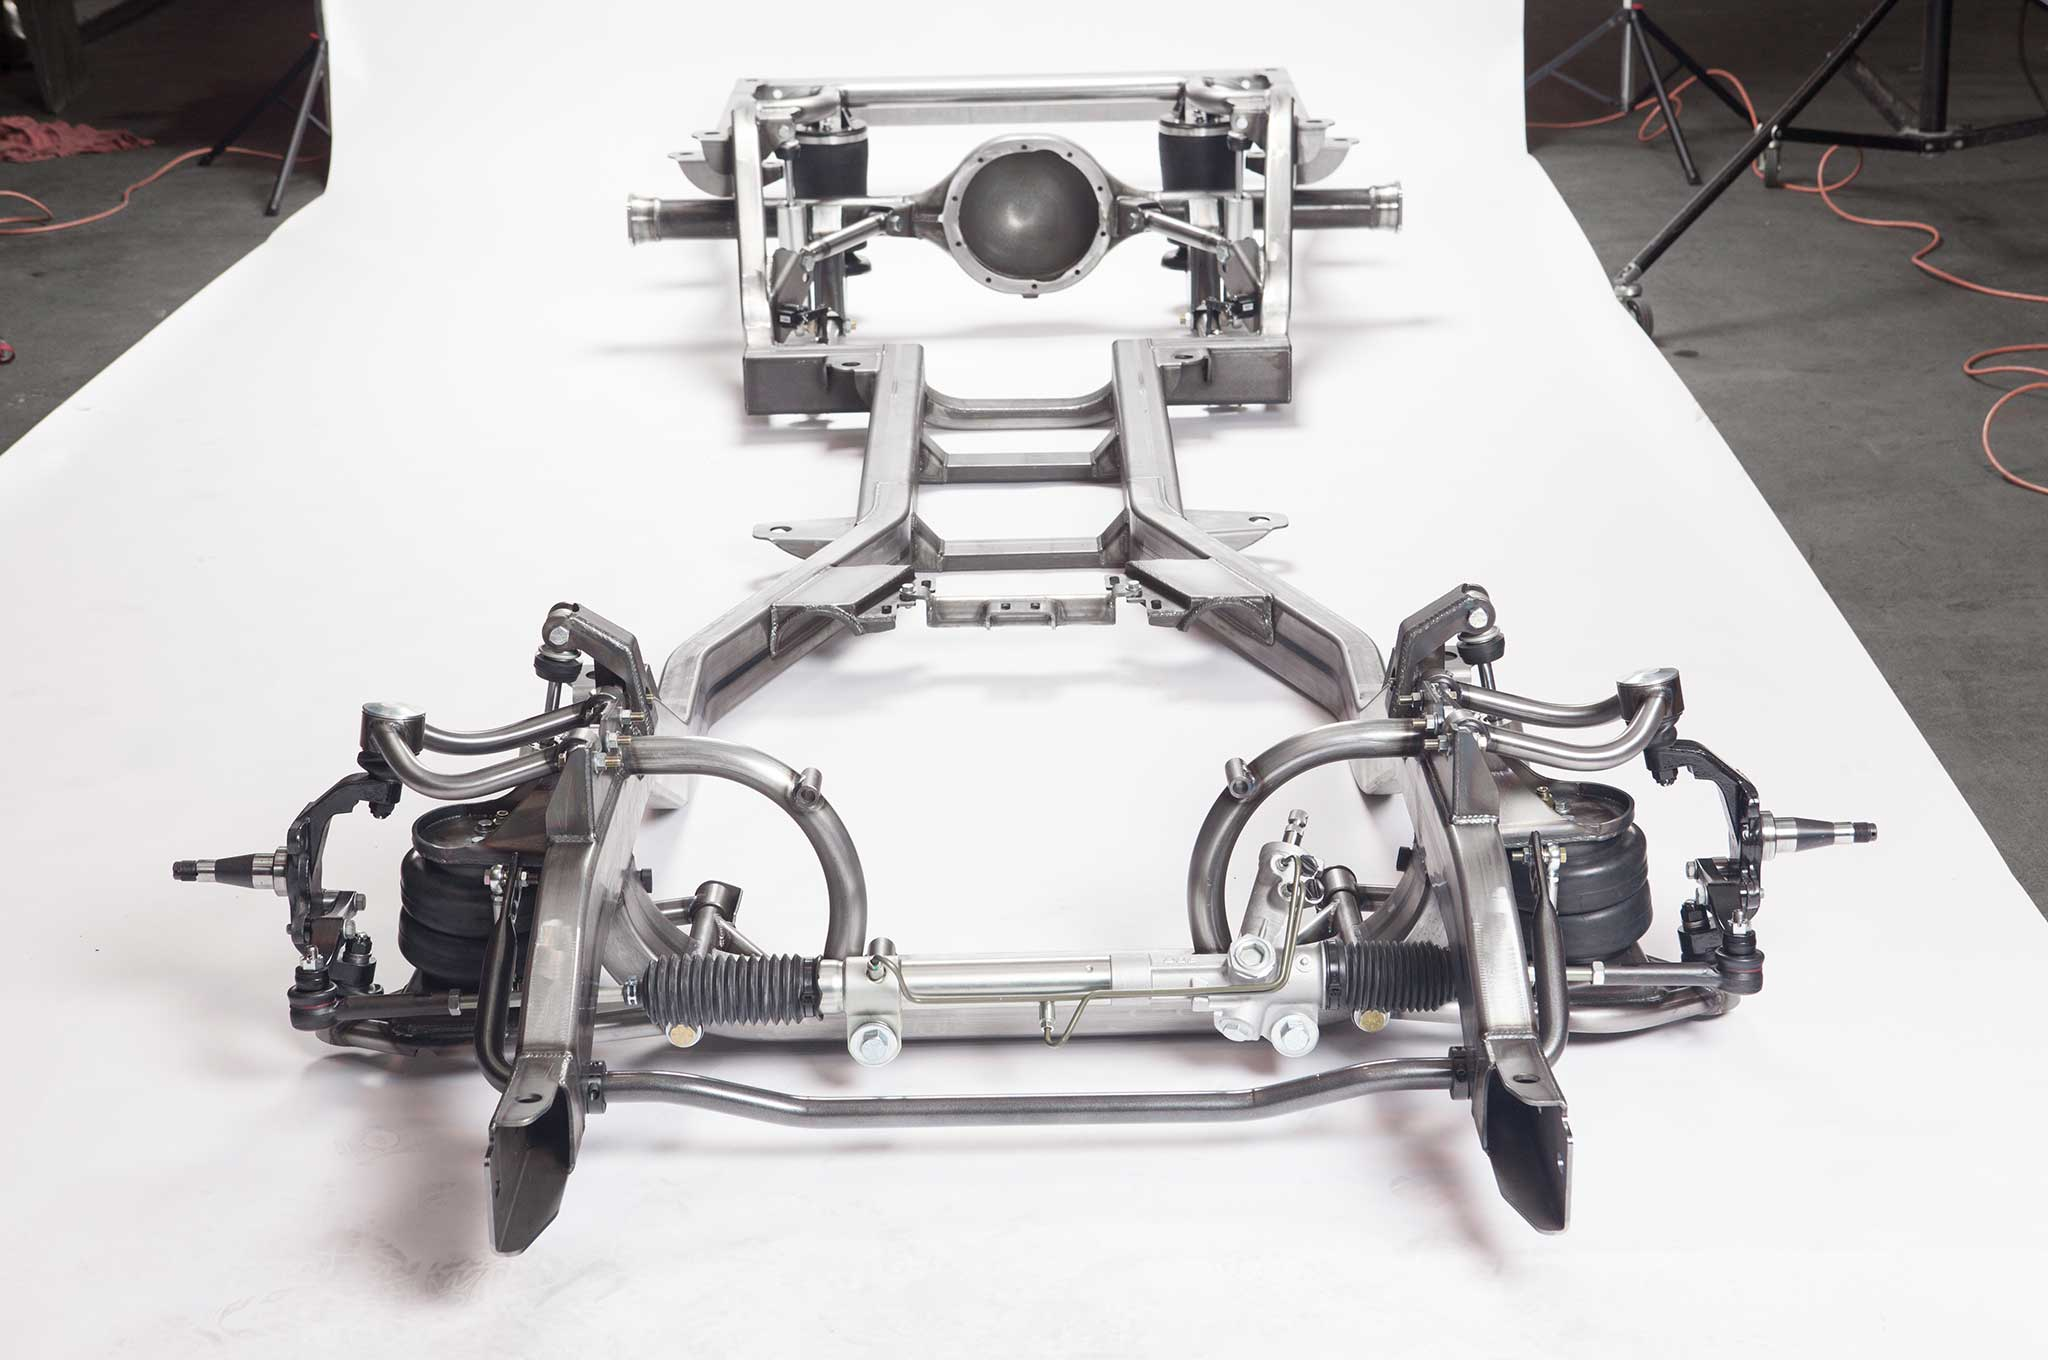 Art Morrison's New Frame for the 1959-1964 Impala